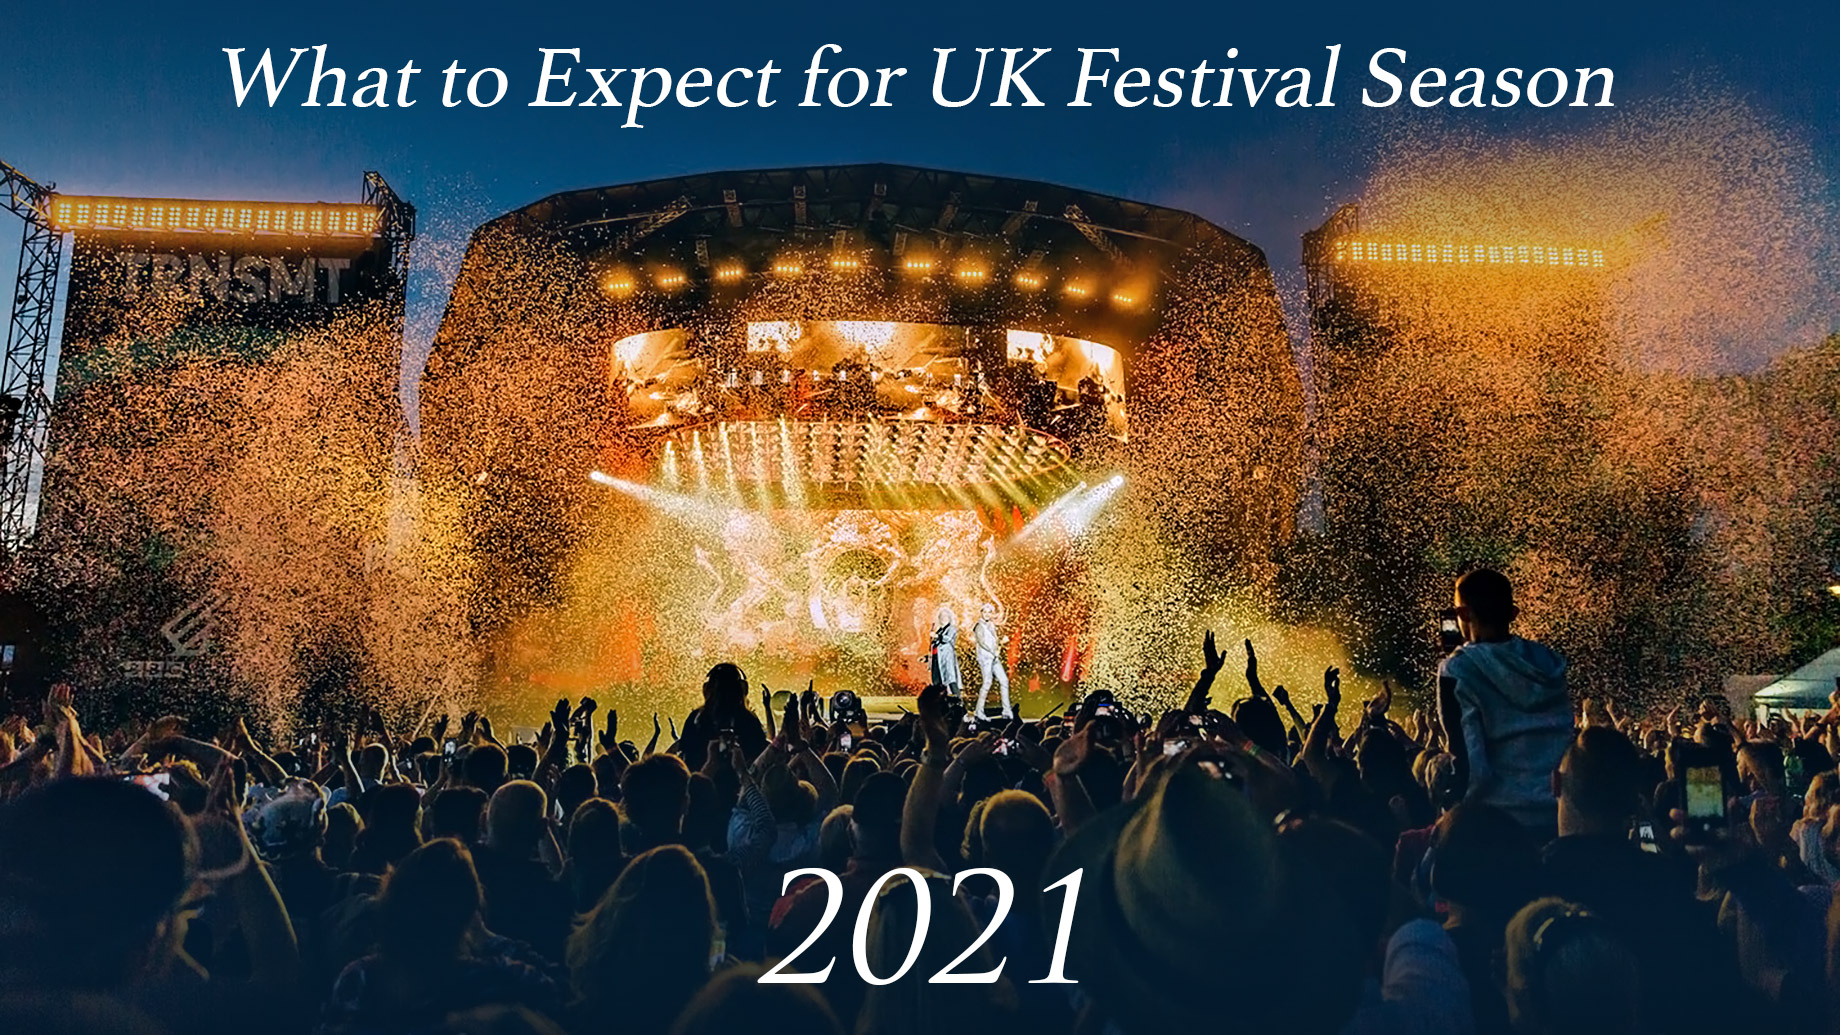 What to Expect for UK Festival Season in 2021